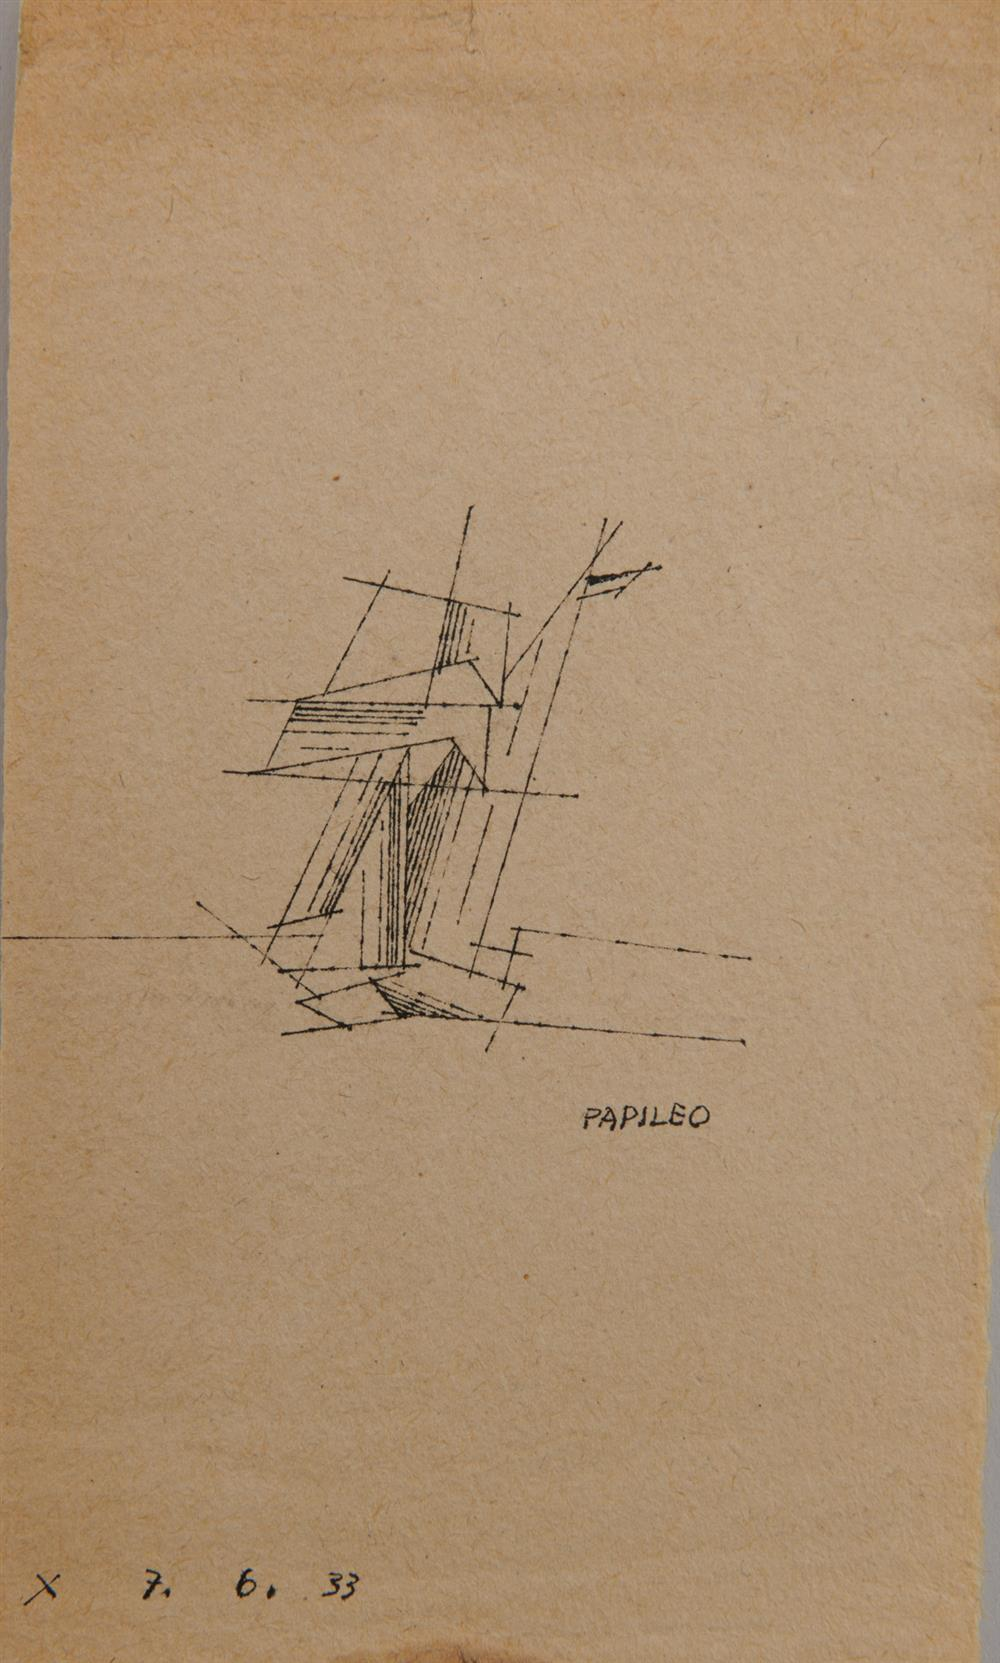 LYONEL FEININGER, (American/German, 1871-1956), Untitled (Sailboat), 1933, pen and ink, 6 1/4 x 3 3/4 in.